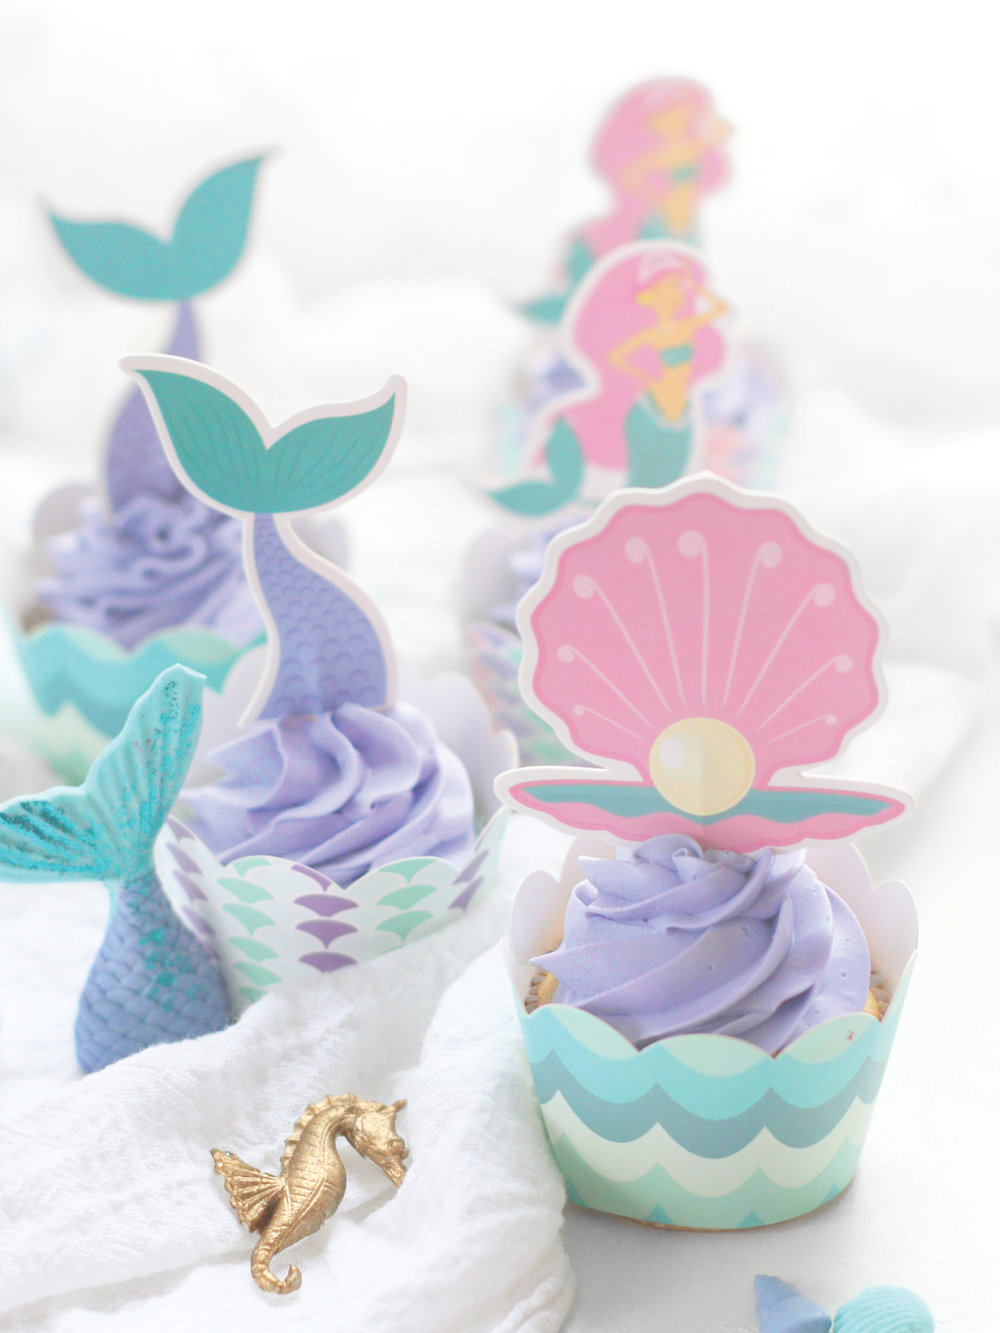 royal-icing-baking-supply-birthday-cupcakes-babyshower-cupcakes-cupcake-wrappers-homemade-cupcakes-girl-party-little-mermaid-party-ideas-mermaid-birthday-party-supplies.jpg